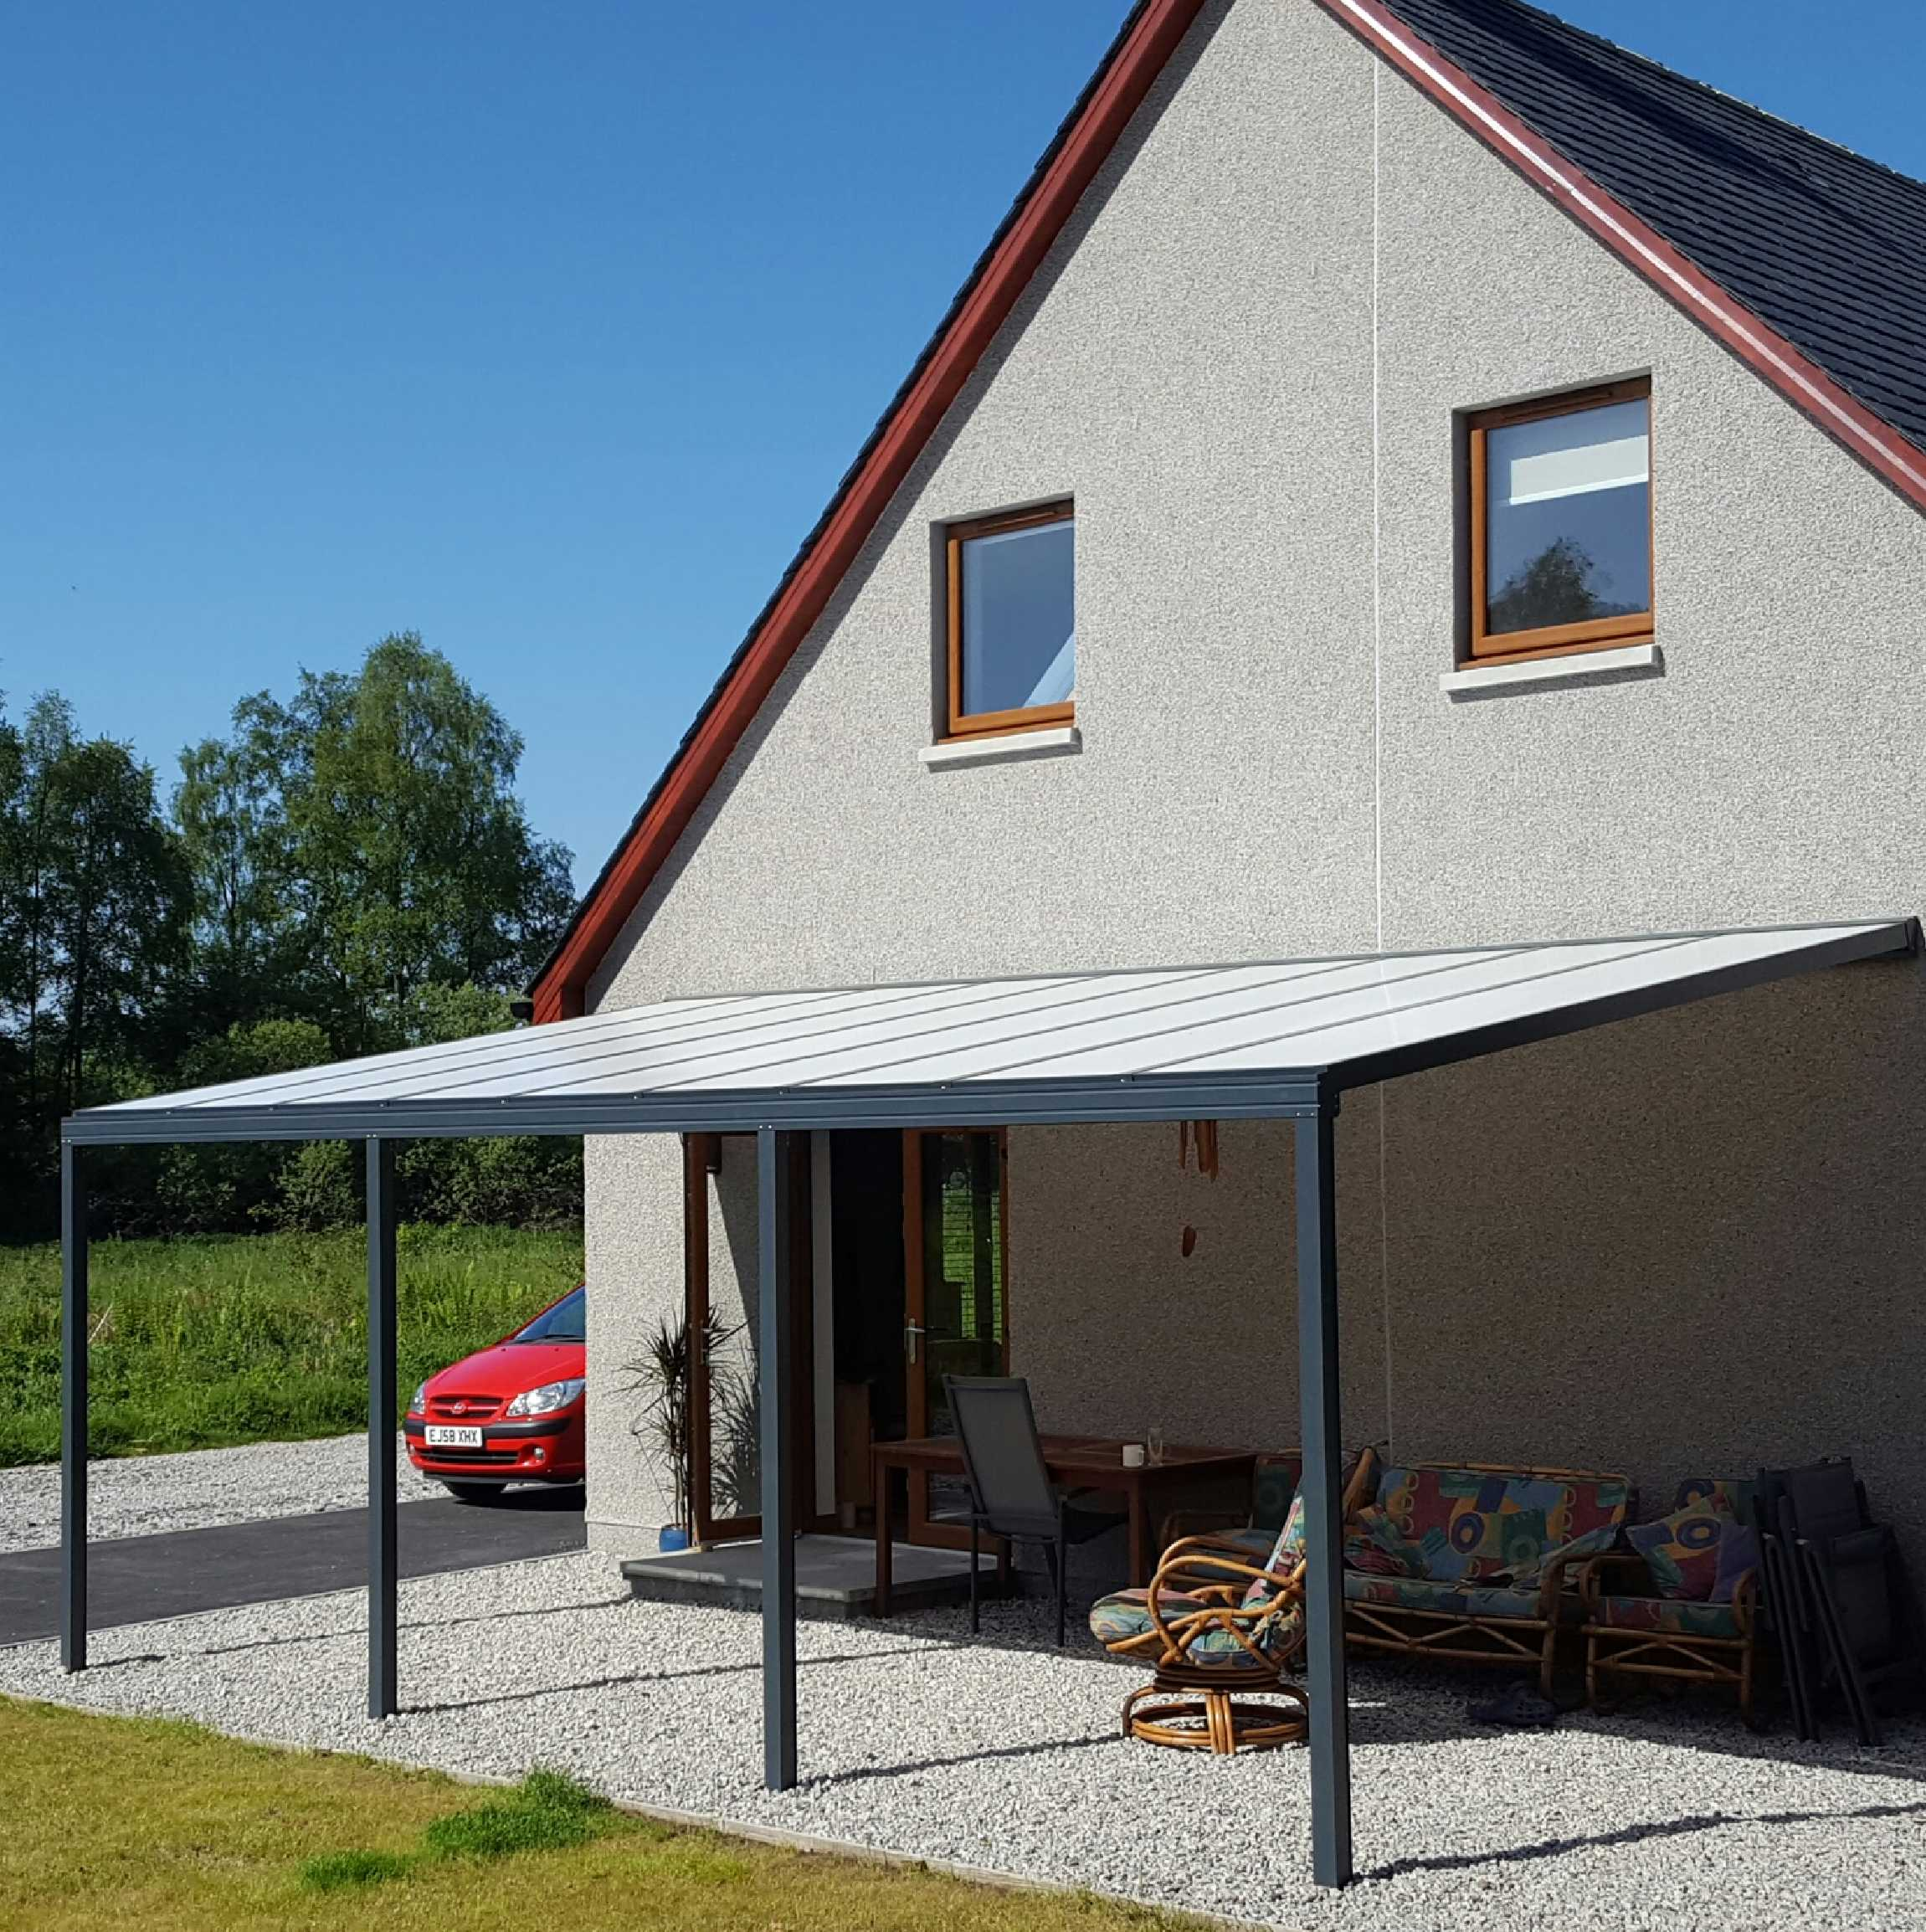 Great selection of Omega Smart Lean-To Canopy, Anthracite Grey, 16mm Polycarbonate Glazing - 11.6m (W) x 2.5m (P), (5) Supporting Posts